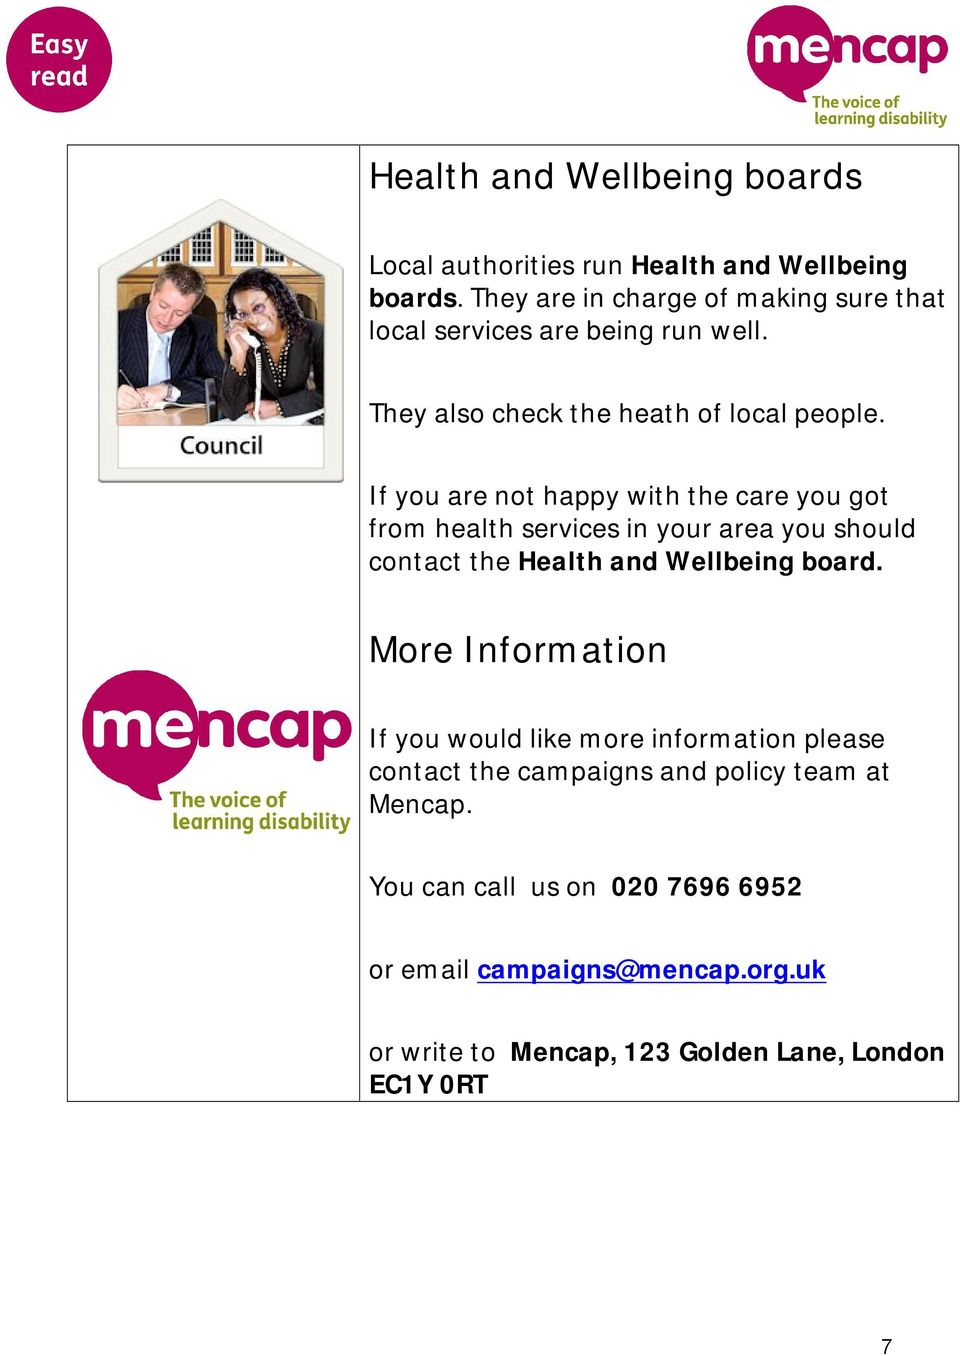 from health services in your area you should contact the Health and Wellbeing board.